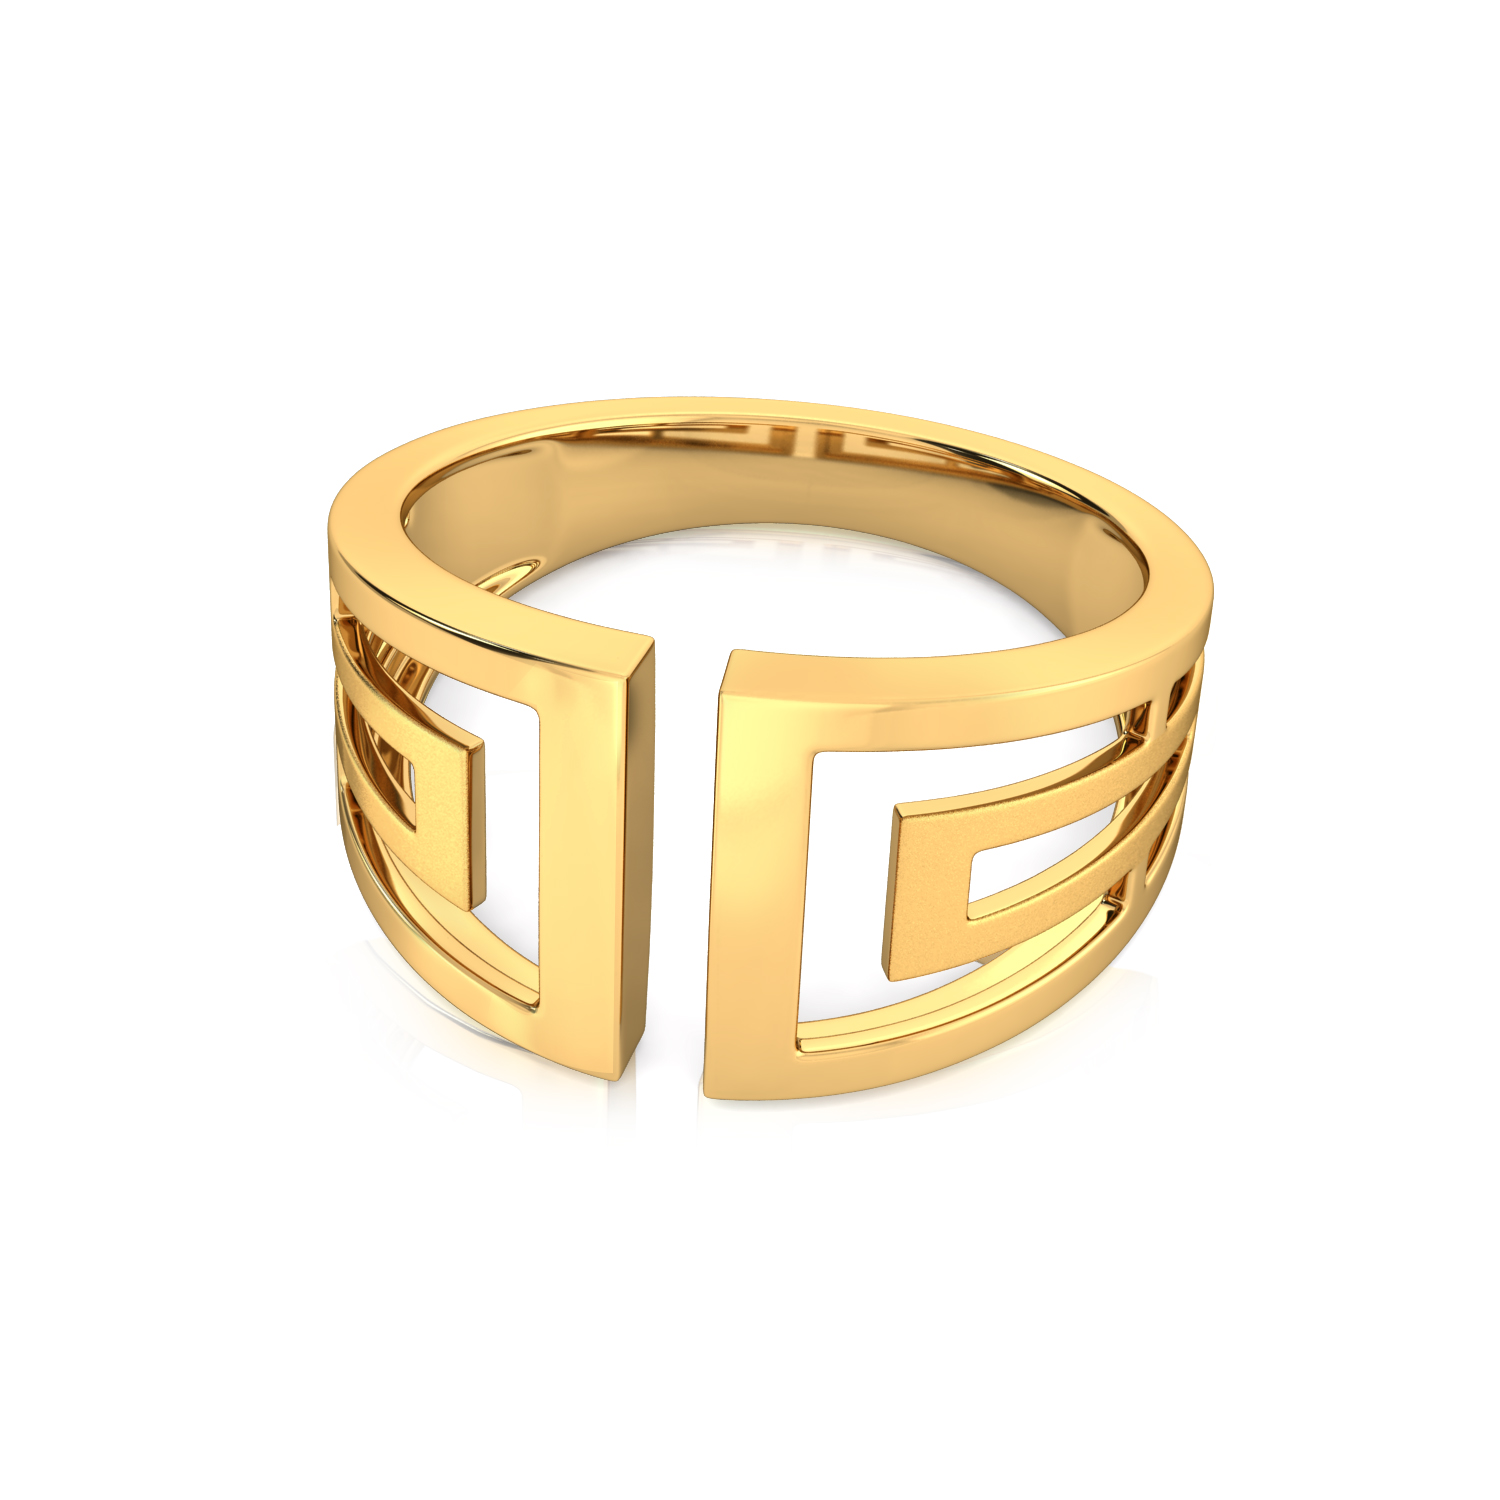 Out of the box Gold Rings